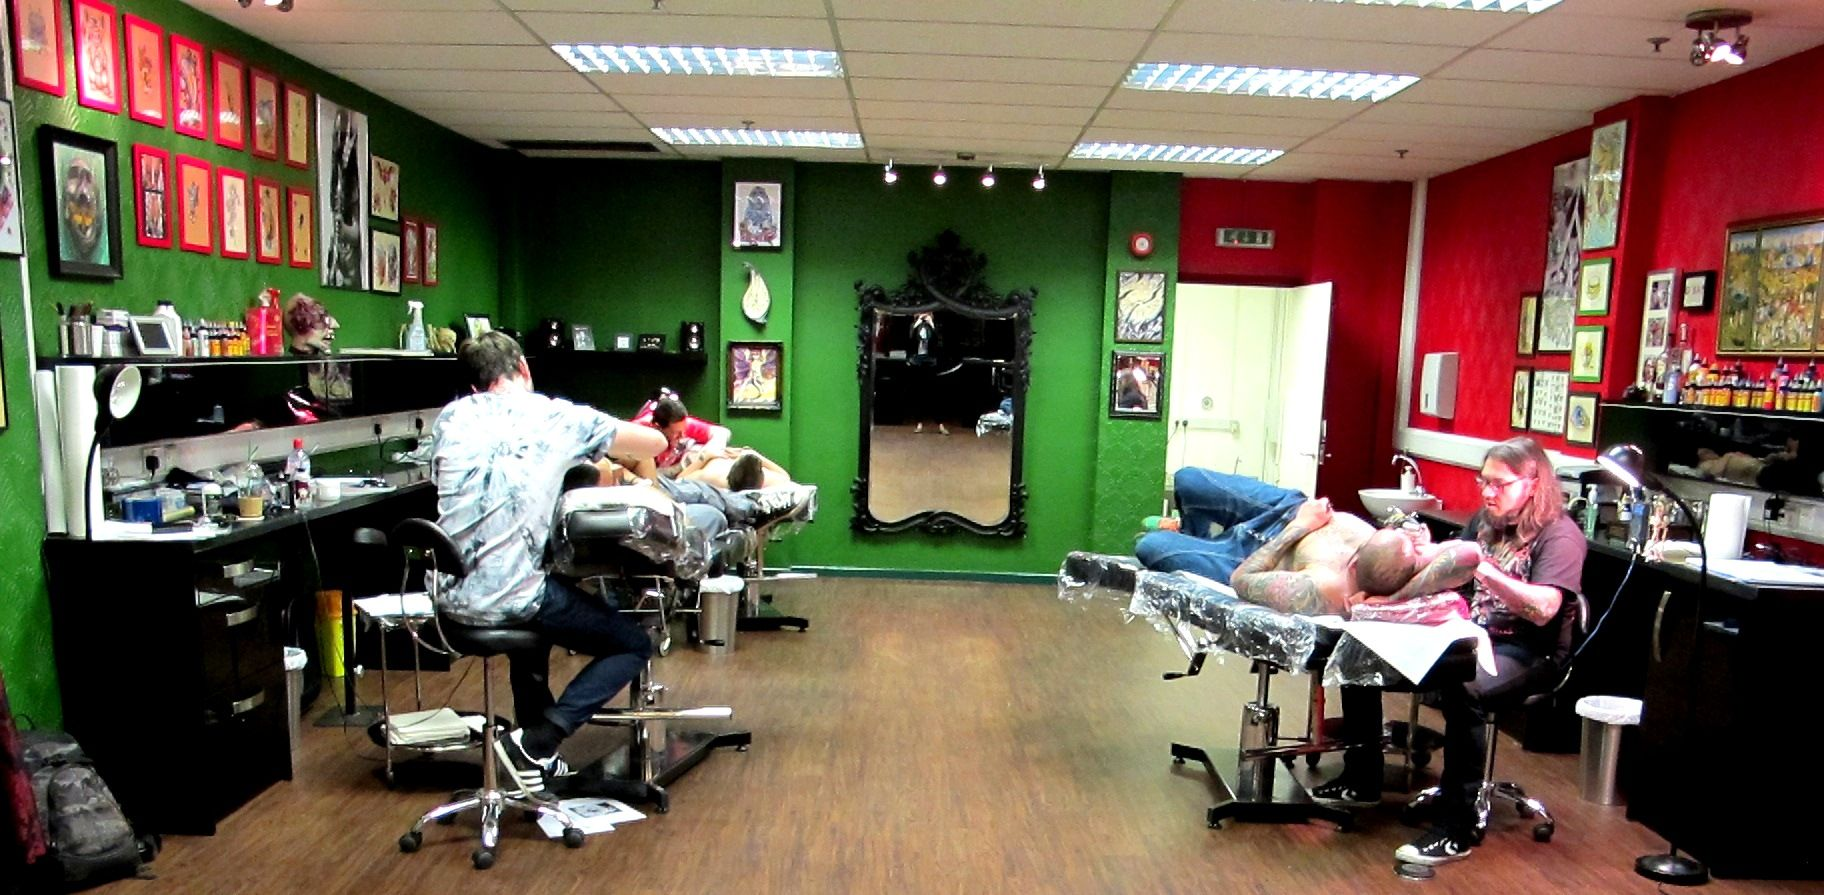 Body garden tattoo shop birmingham the green room The green room birmingham